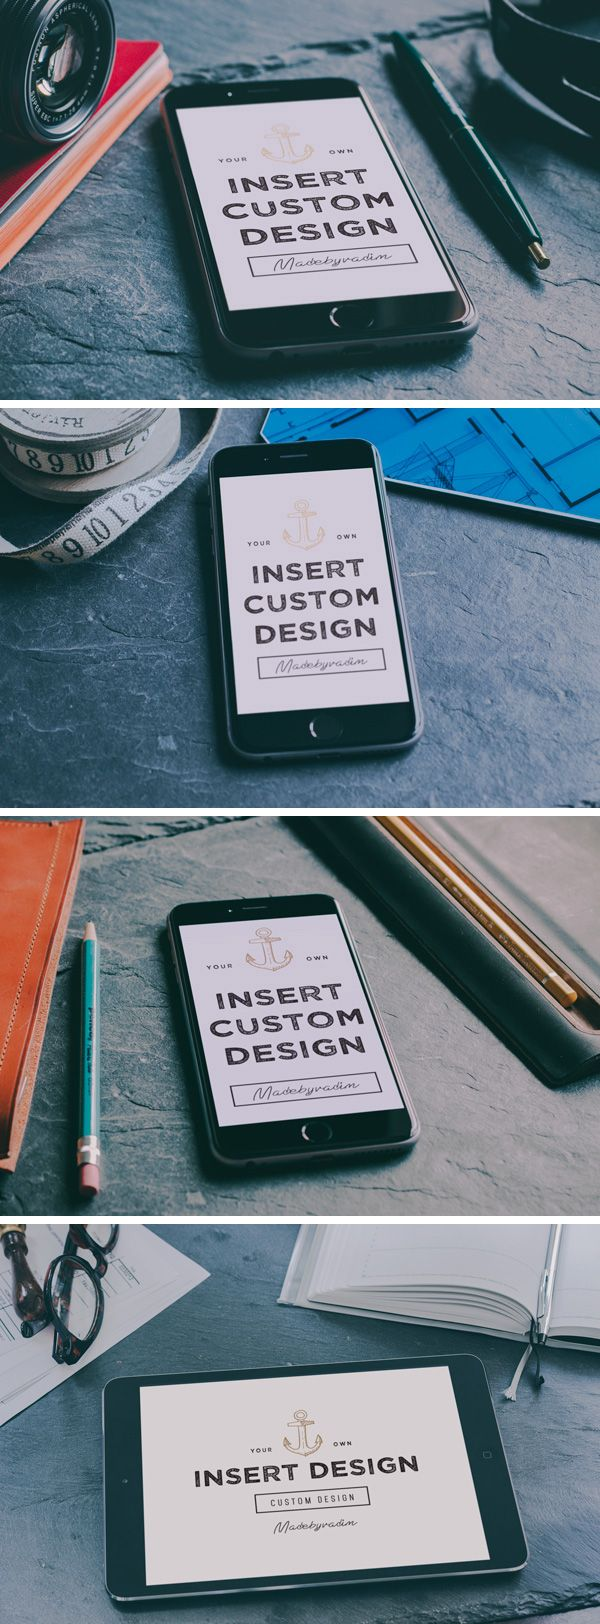 iPhone 6 & iPad Photo MockUps | GraphicBurger